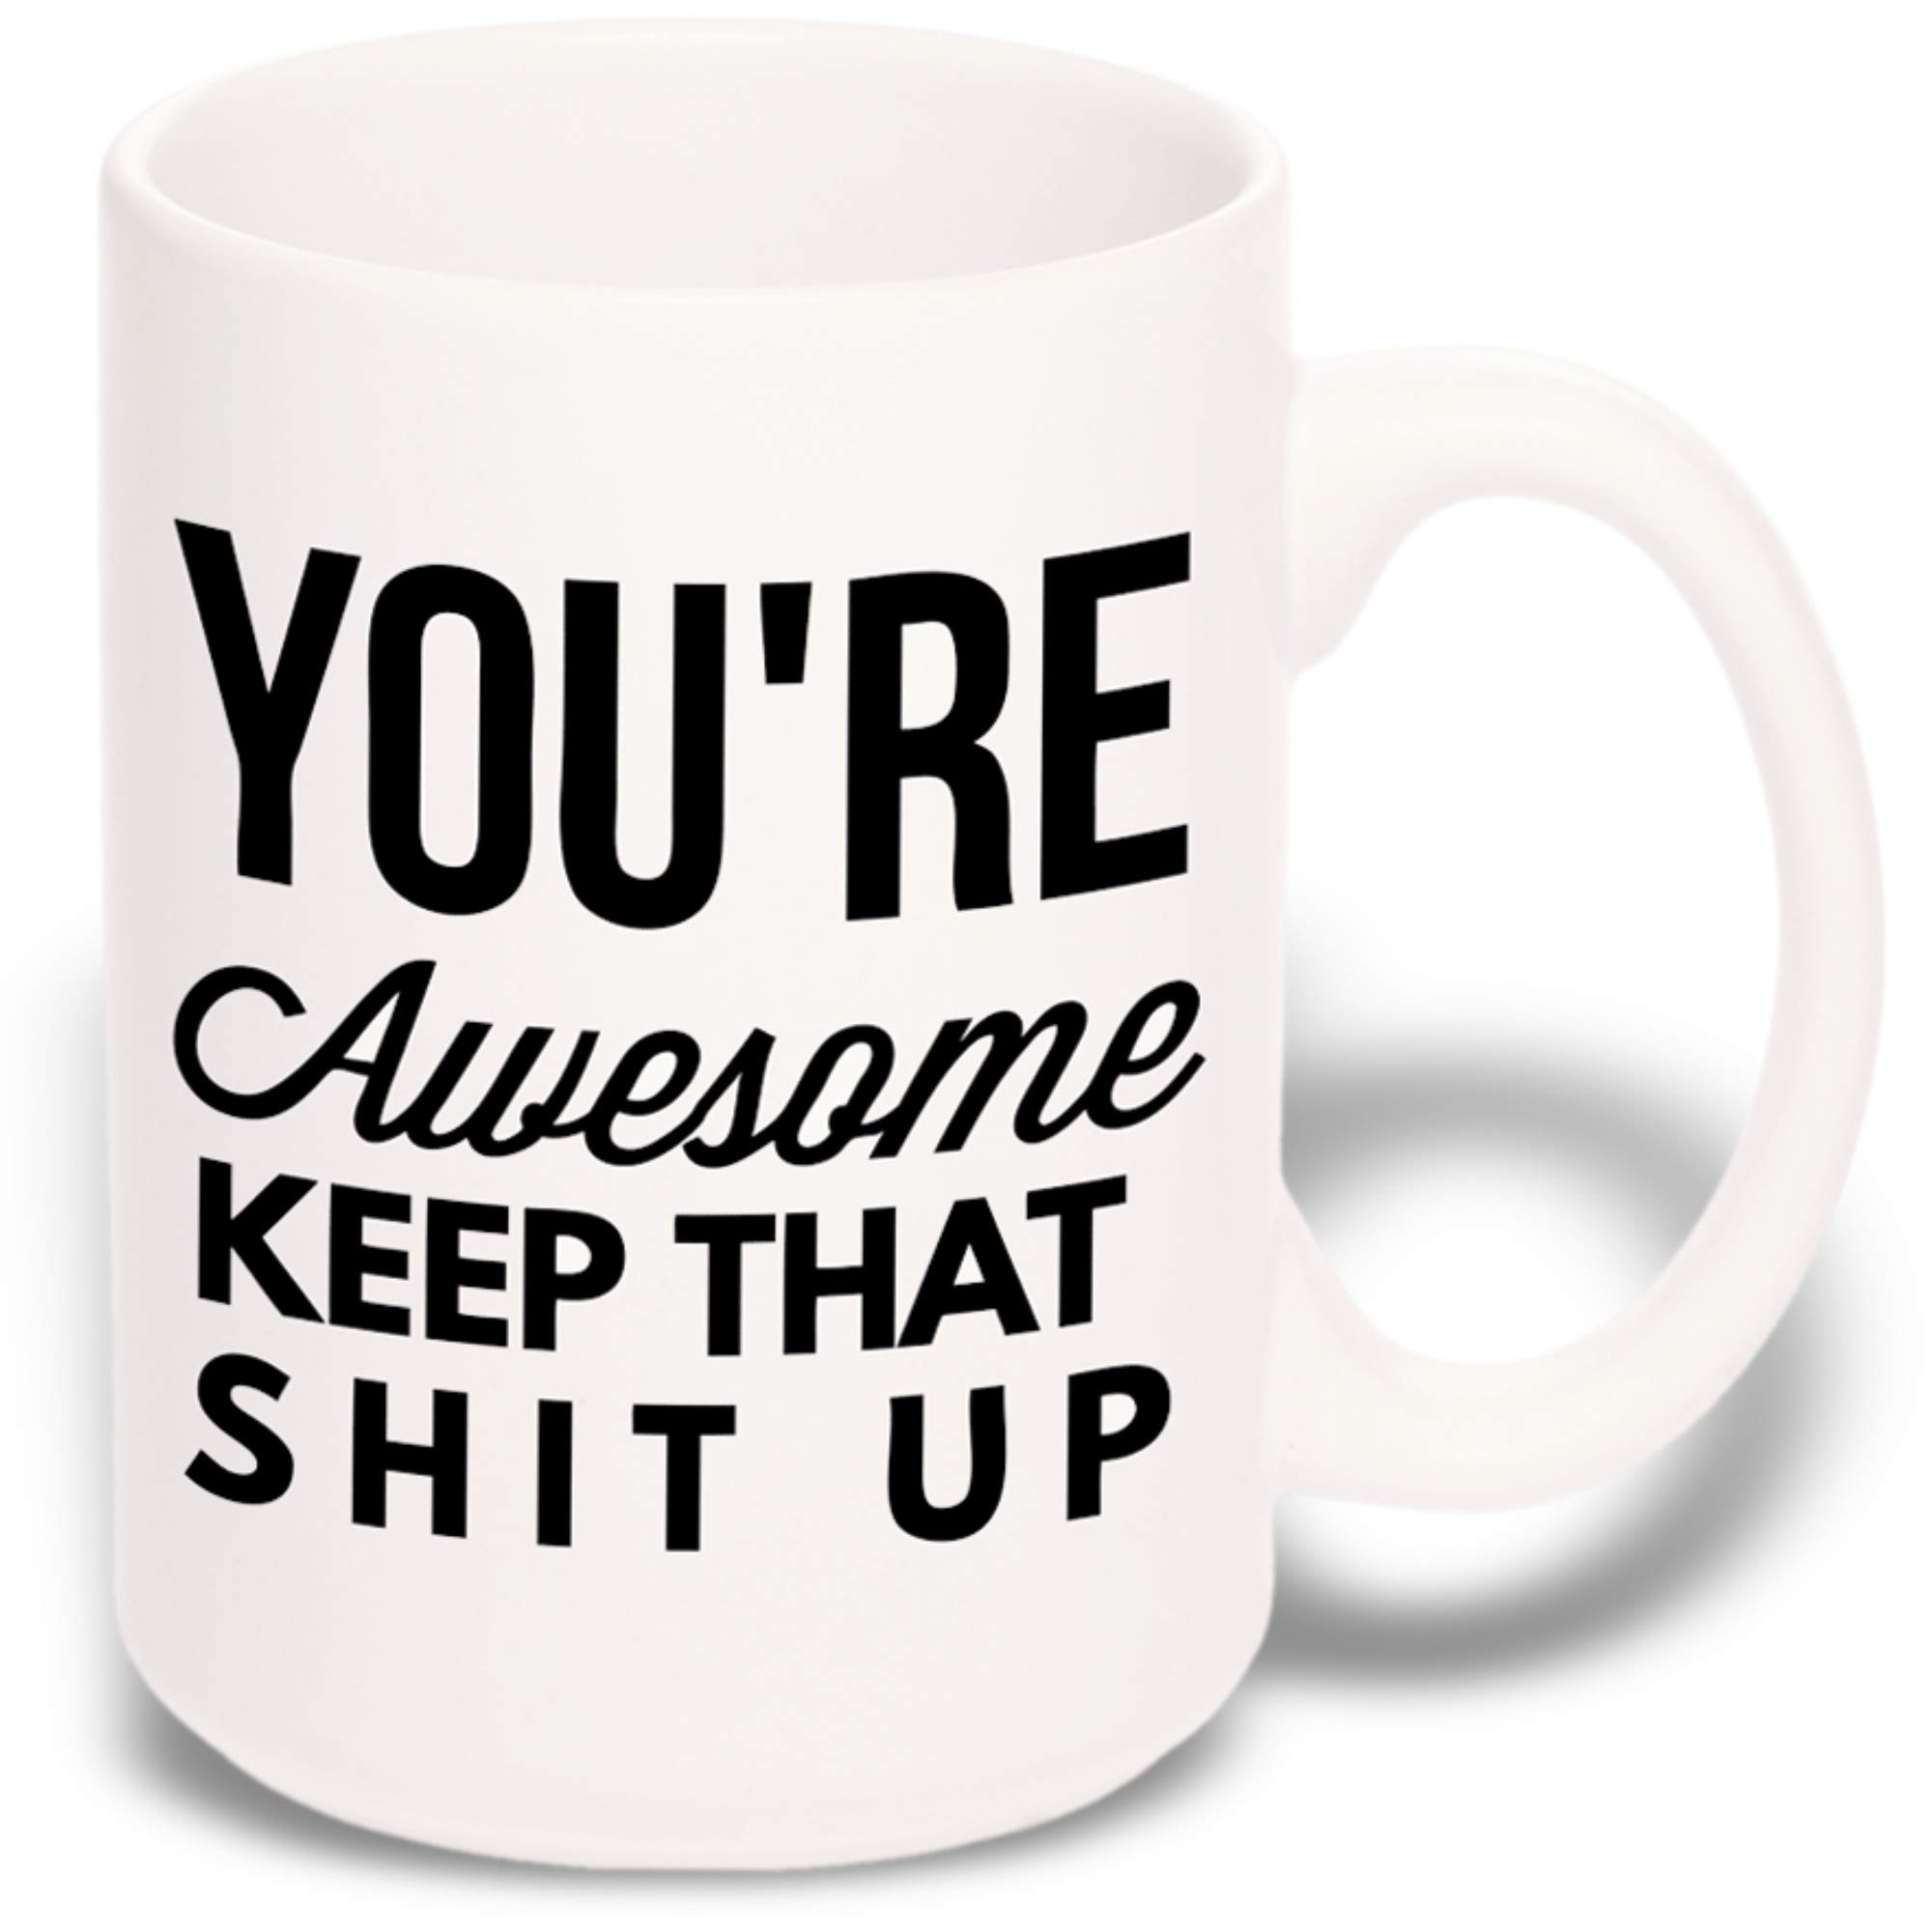 15 oz Large Funny Coffee Mug: You're Awesome Unique Ceramic Novelty Holiday Christmas Hanukkah Gift for Men & Women Who Love Tea Mugs & Coffee Cups by Gypsy's Cart